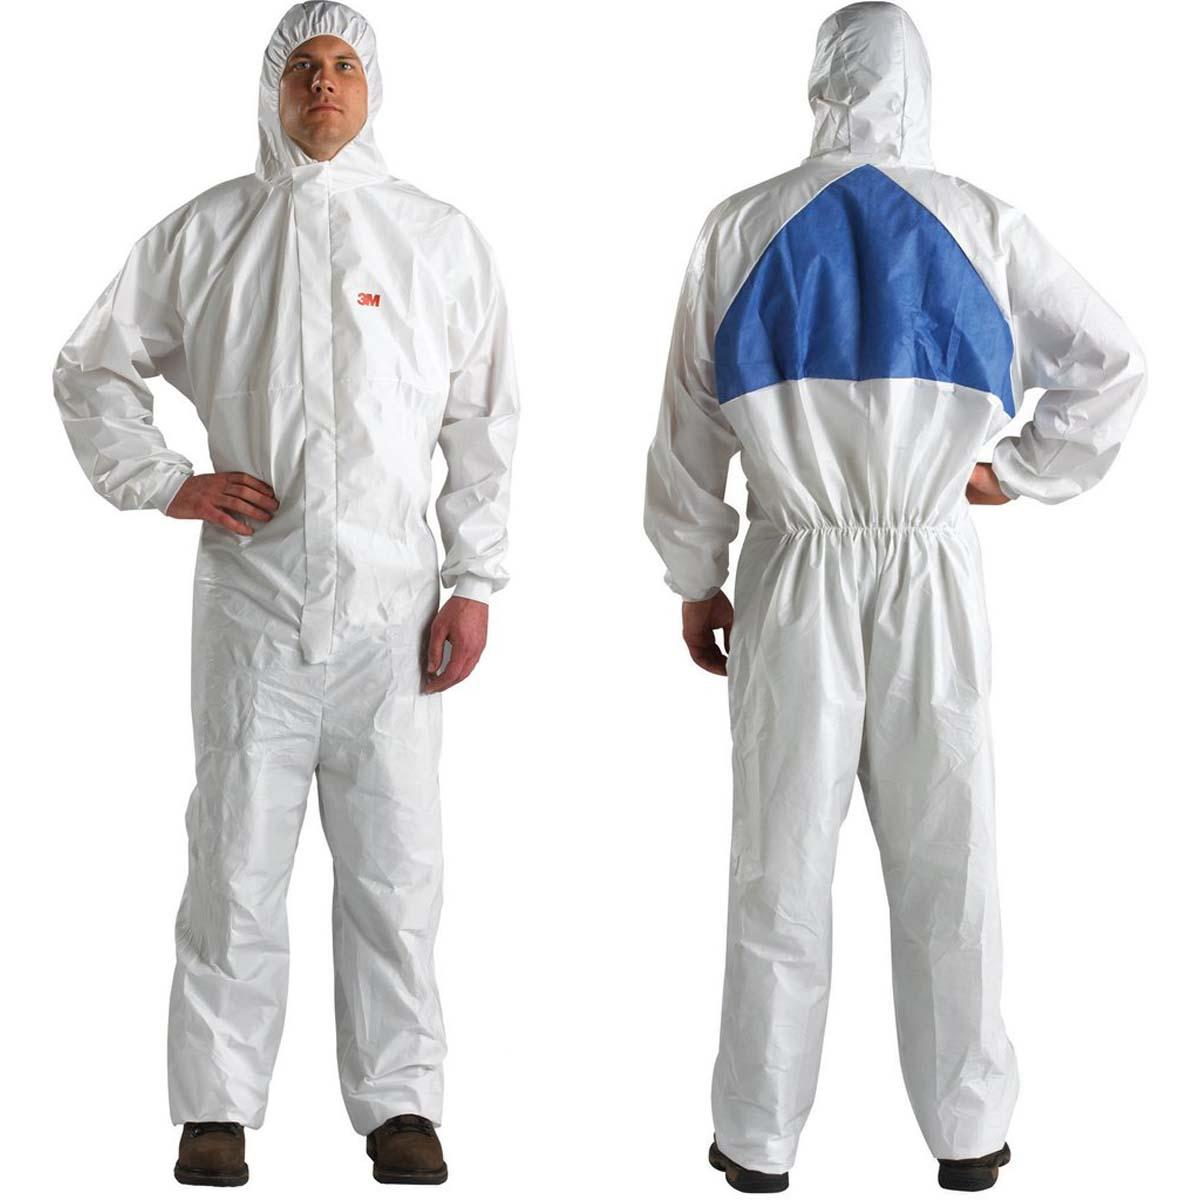 """3Mâ""""¢ Disposable Protective Coverall Safety Work Wear 4540+3XL/00605(AAD) 1/Bag, 20 Ba"""